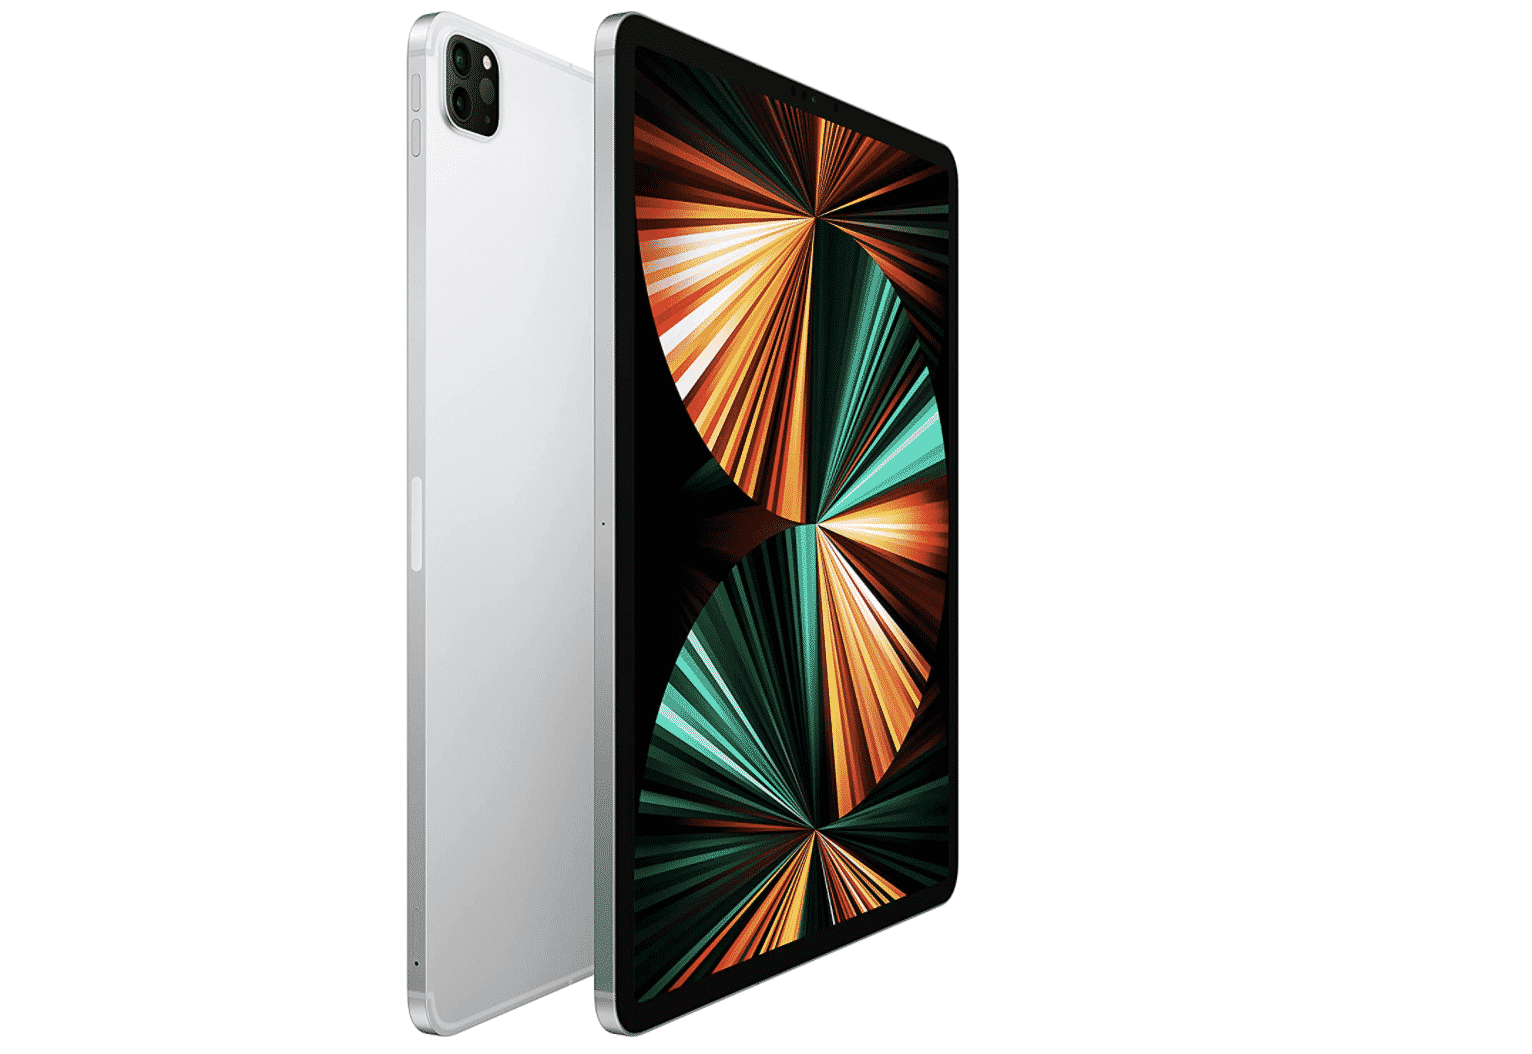 Upgrade to the new M1 iPad Pro and get $150 off